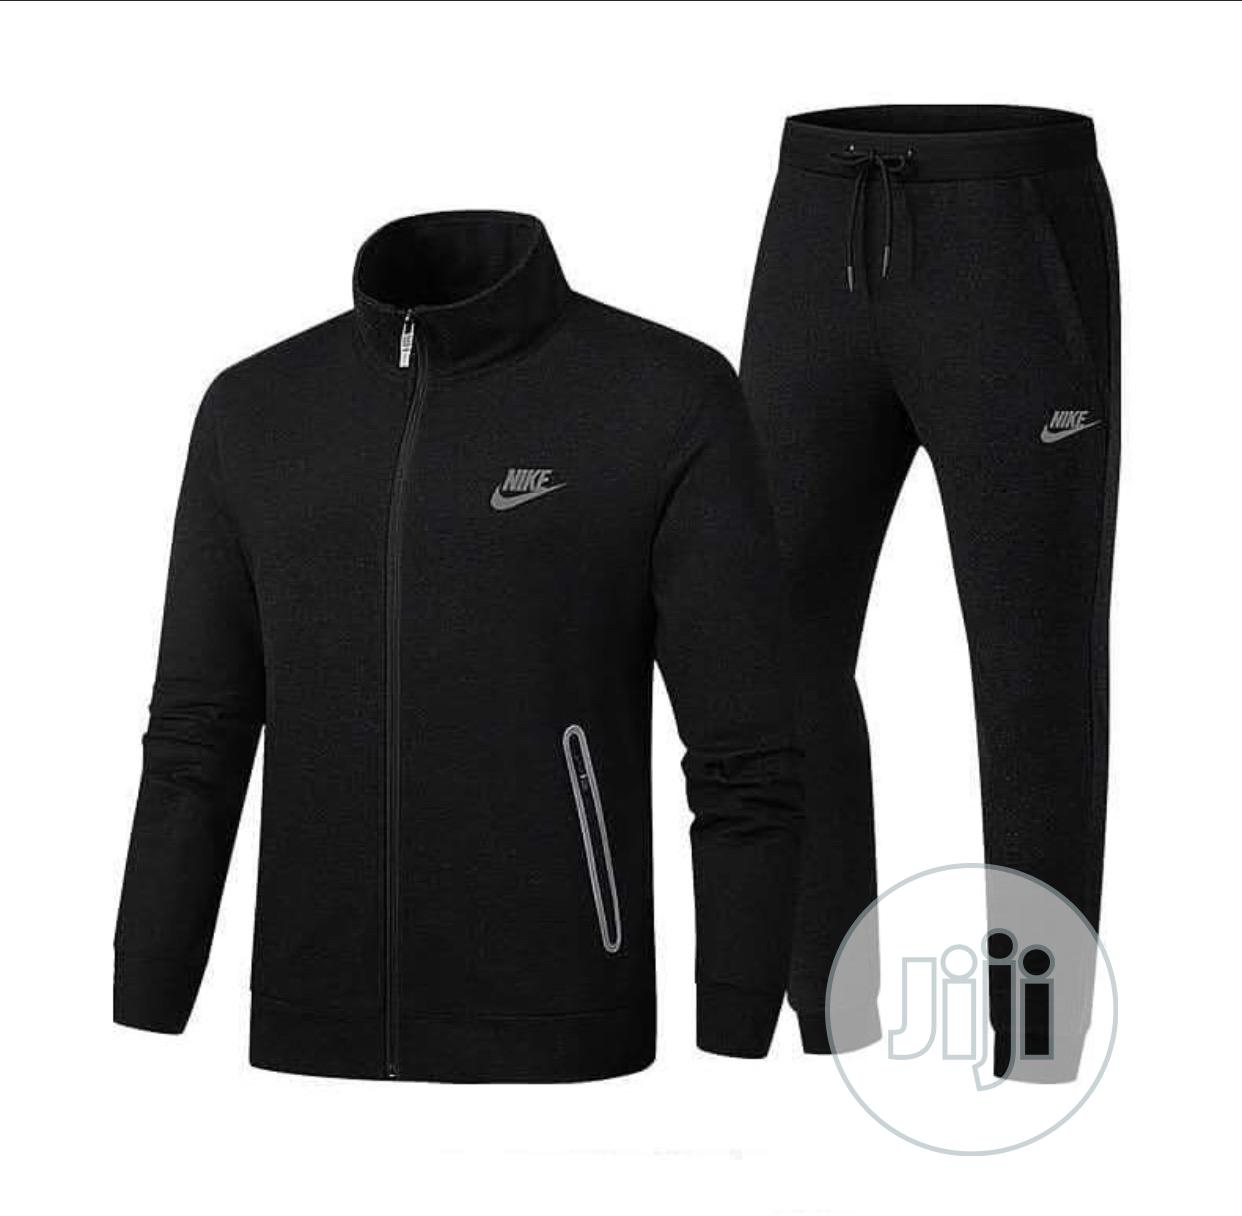 High Quality Nike Track Suit